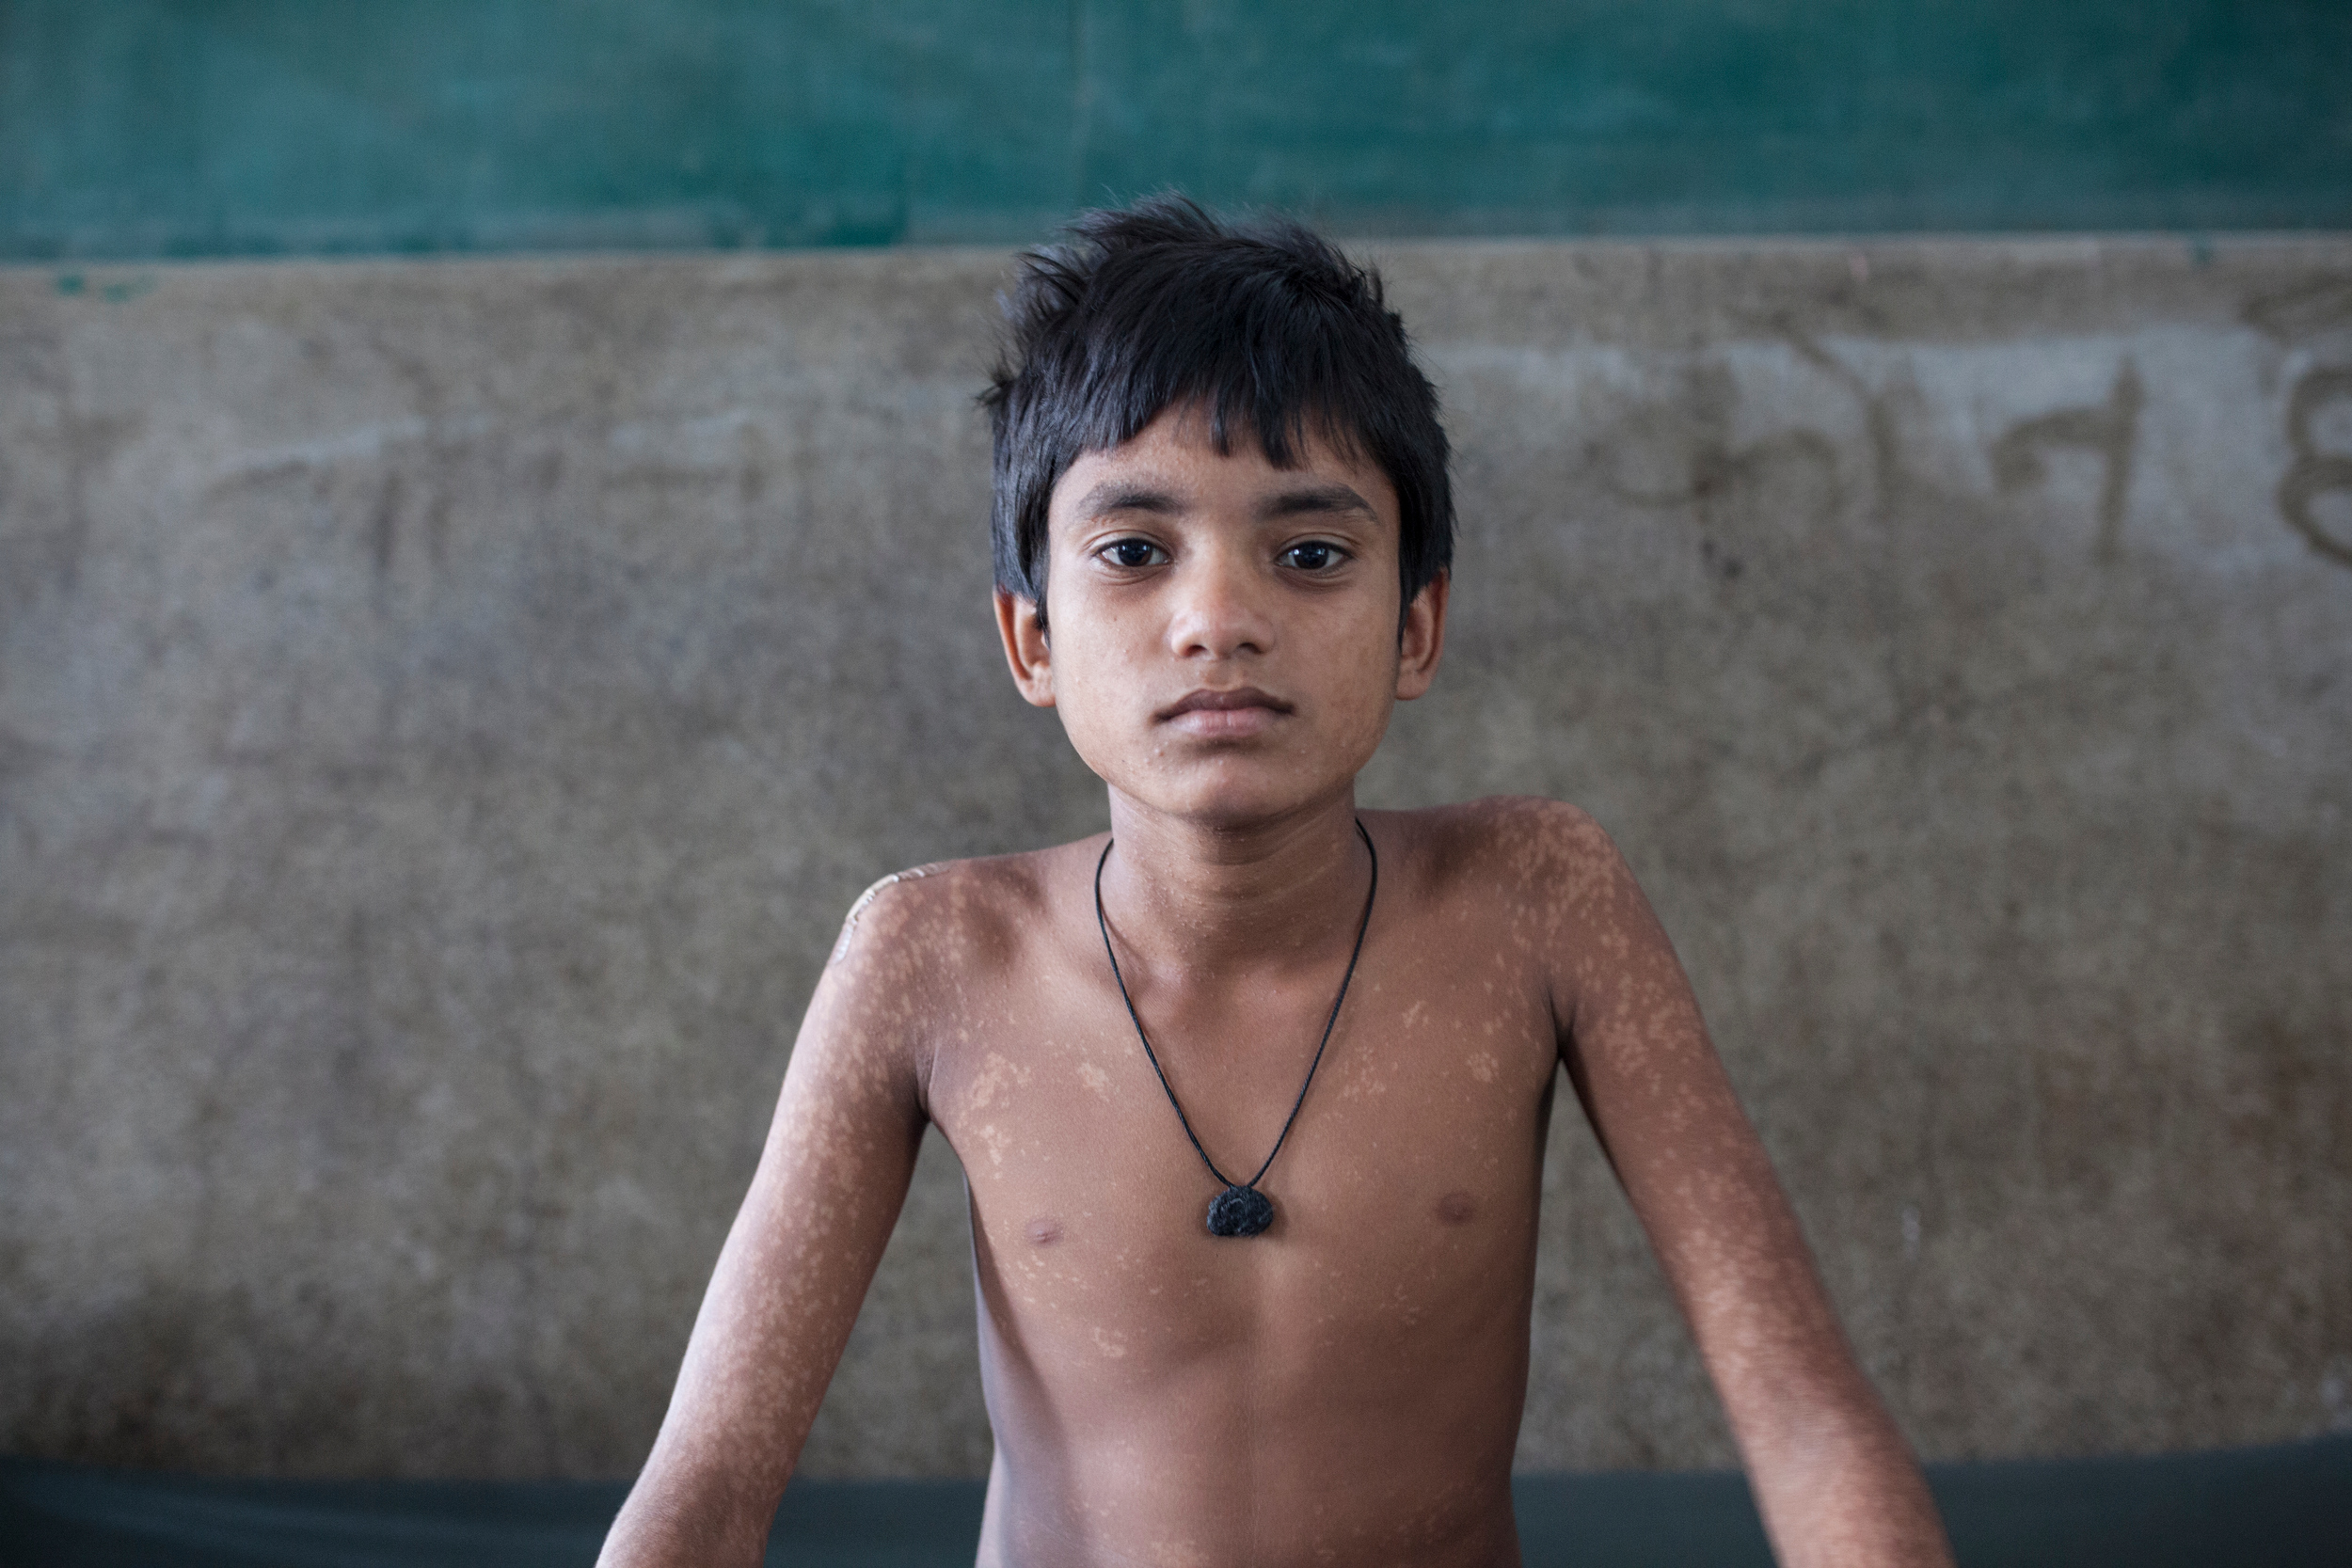 Jummadin suffered Kala Azar for the first time two and a half years ago and he was treated. A few months ago, his father Jummadin, noticed spots on the skin of his son. Alarmed he took Jummadin to Gopalganj's PHC where they confirmed that he was suffering PKDL.